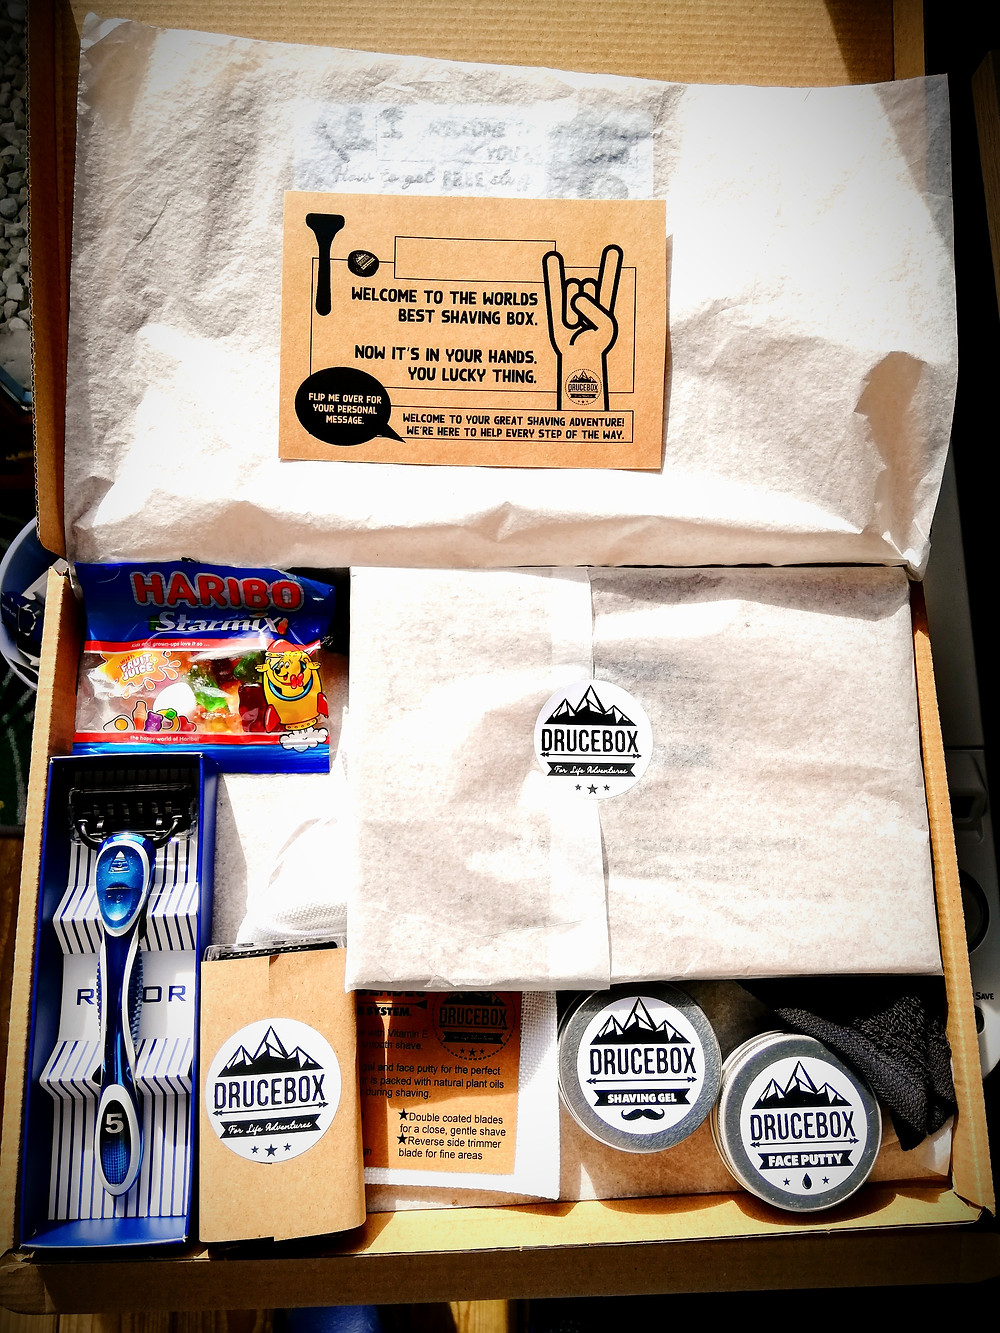 The best razor for first time shavers and shaving tips for teenage boys in one box. Parent advice about sons shaving. DRUCEBOX is the best razor for boys starting to shave.